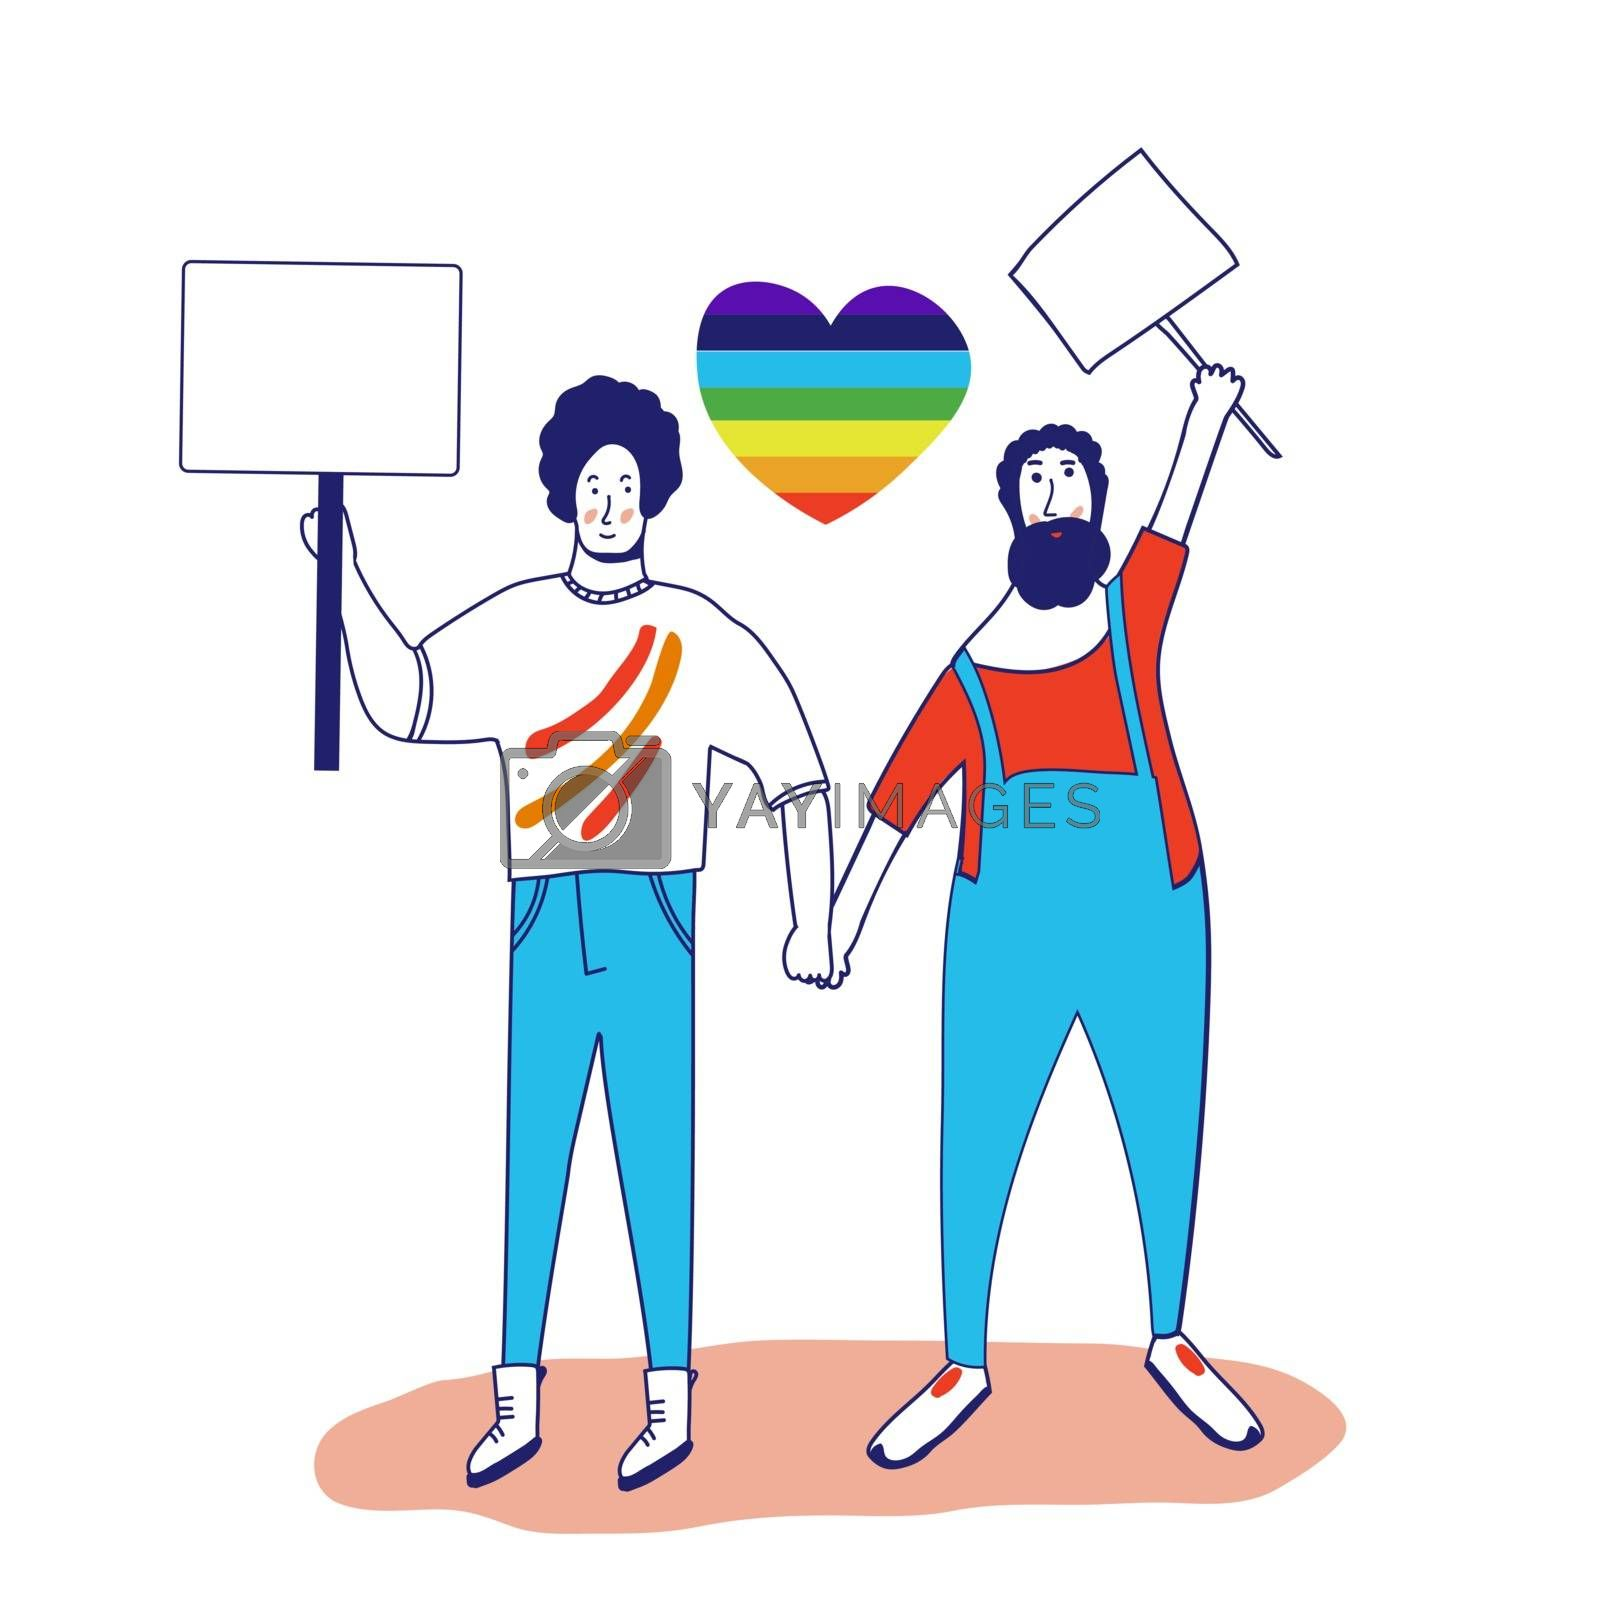 Gay pride. Picket LGBTQ. Different sexual orientation Concept of sexual discrimination protest. Crowd people fight for rights, freedom. Vector illustration in flat style isolated on a white background